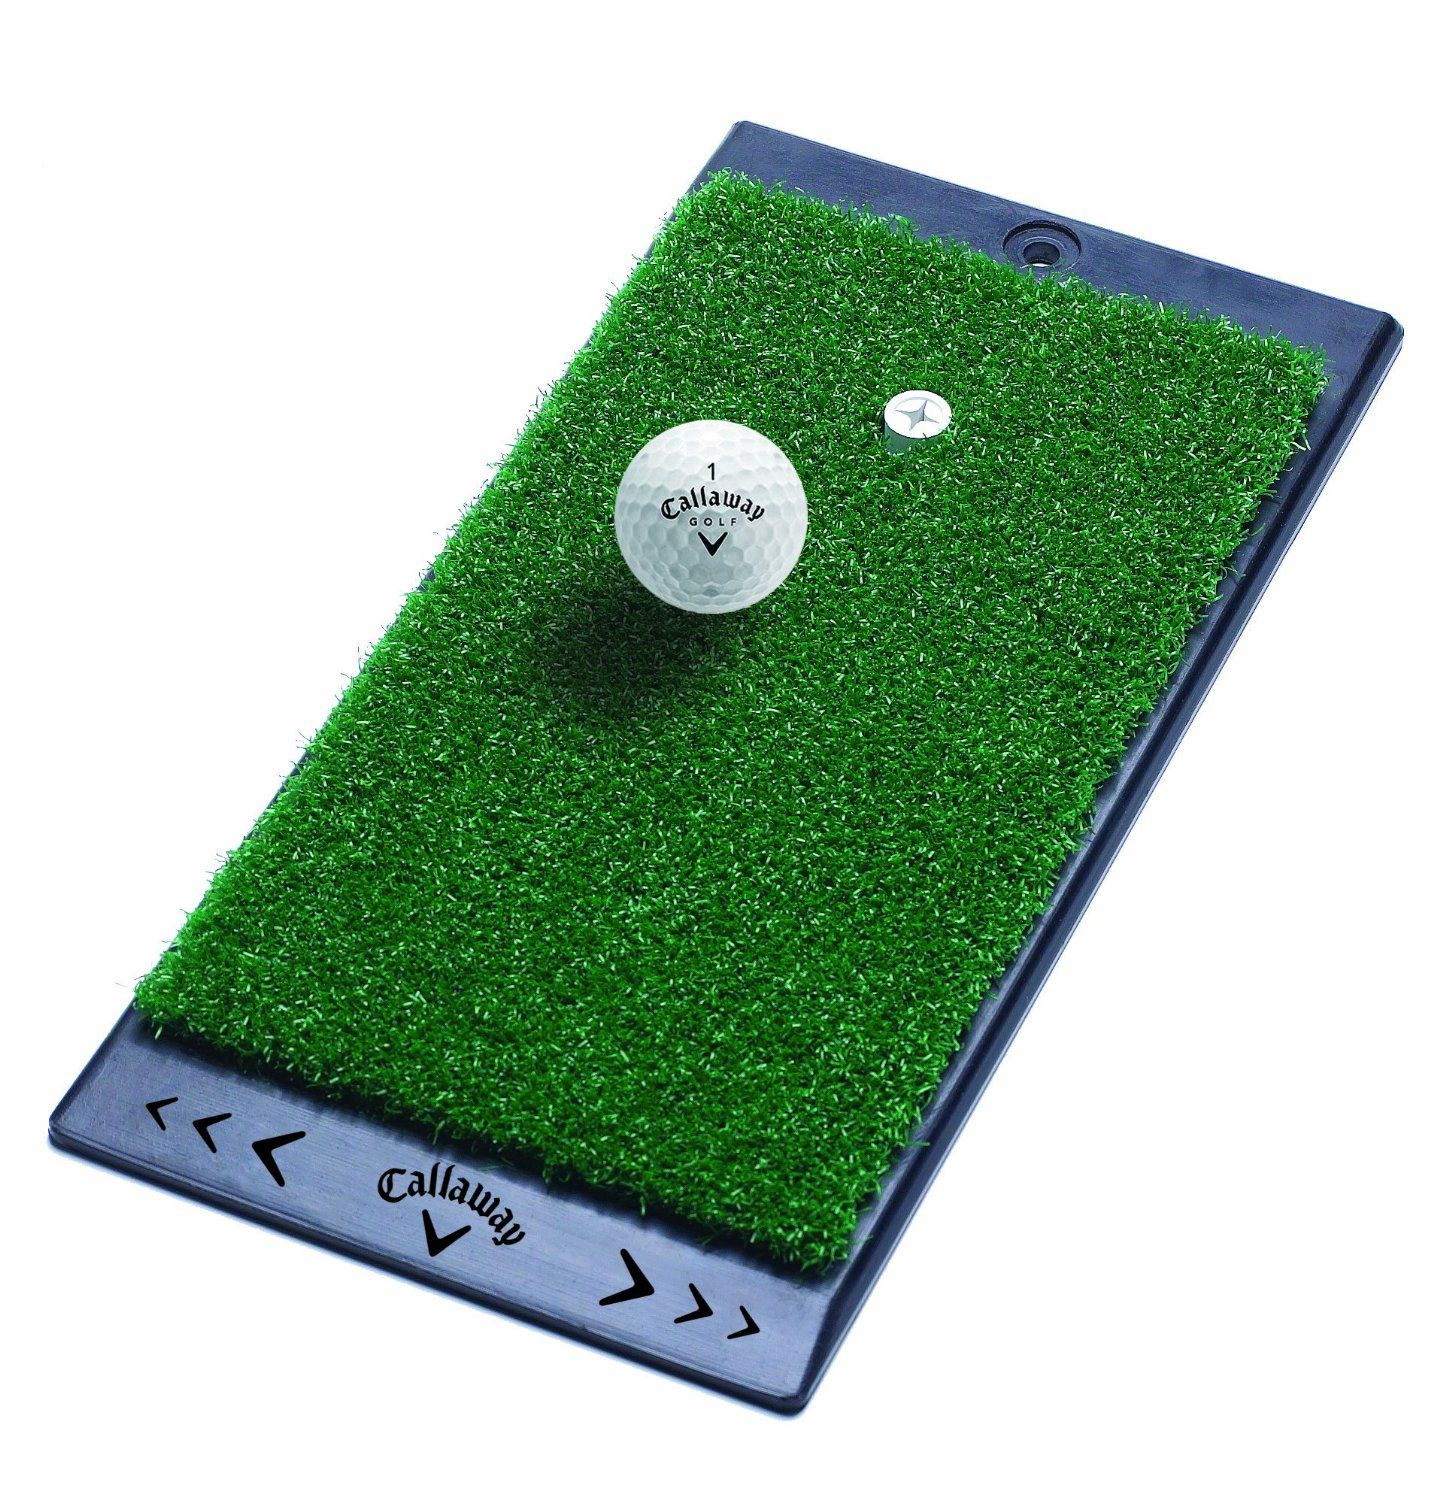 a how mat durapro grams does golf ball weigh mats size pin pounds in much